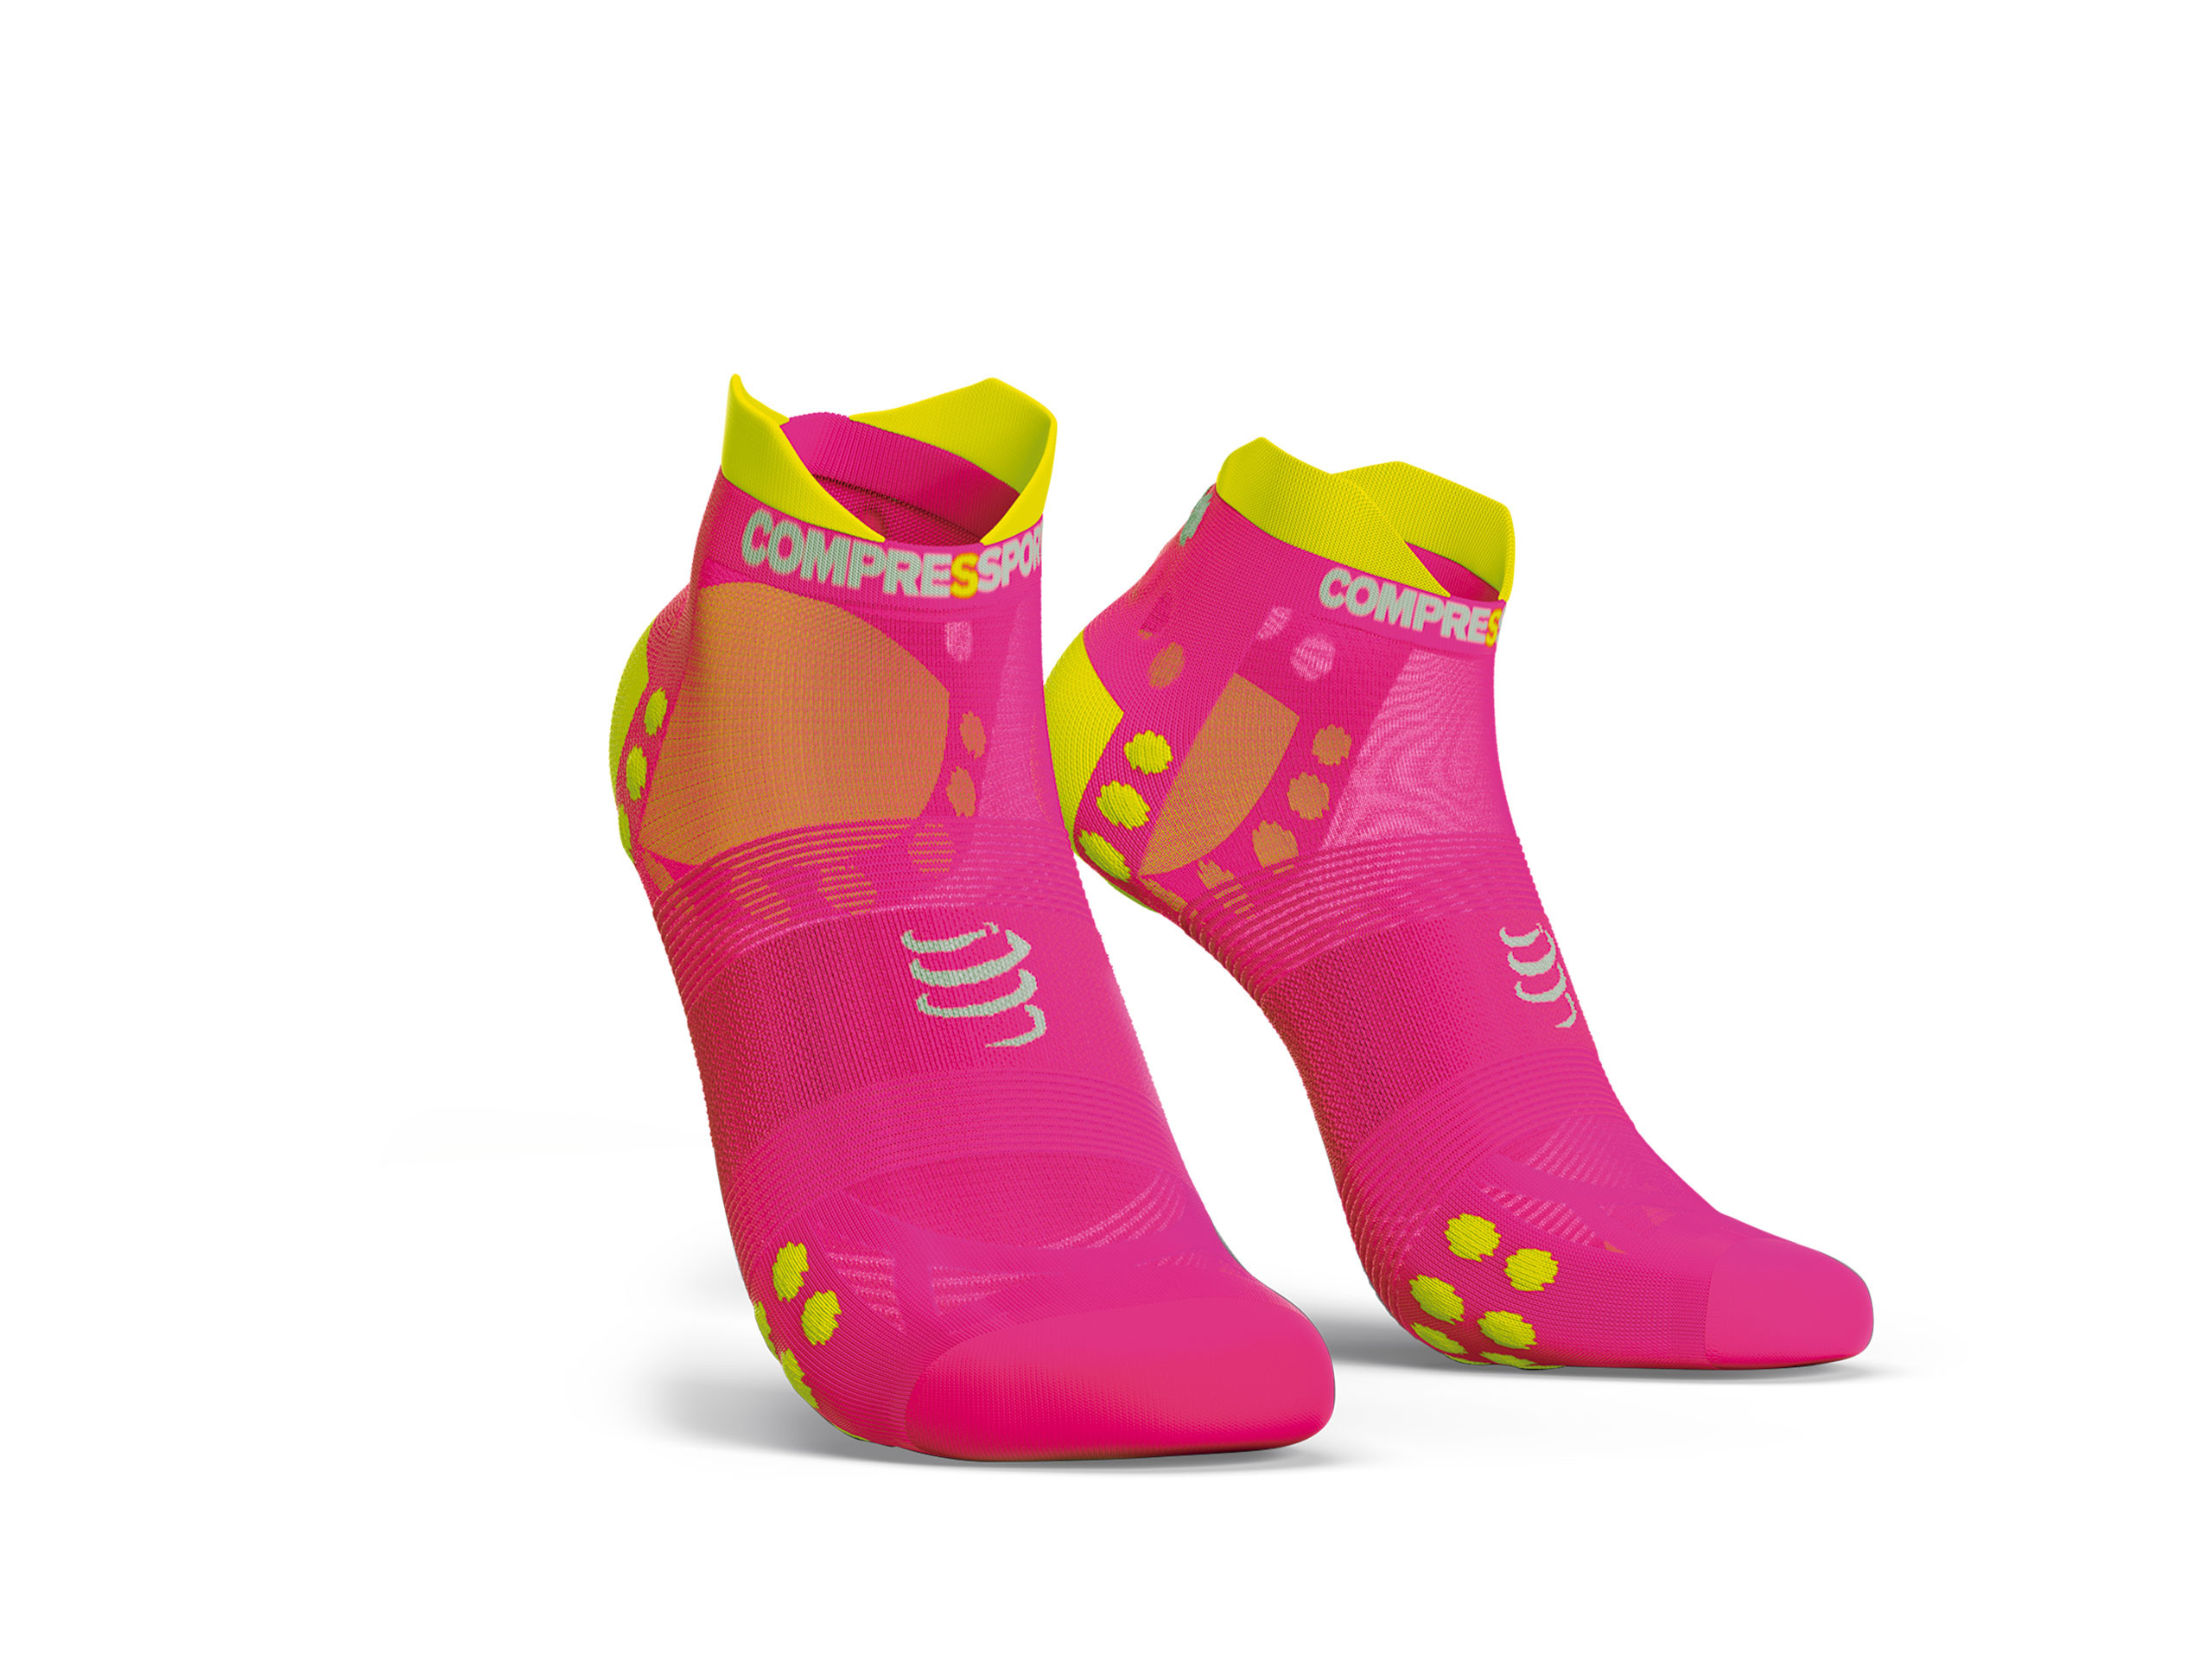 Pro Racing Socks v3.0 Run Ultralight Run Low fluo pink